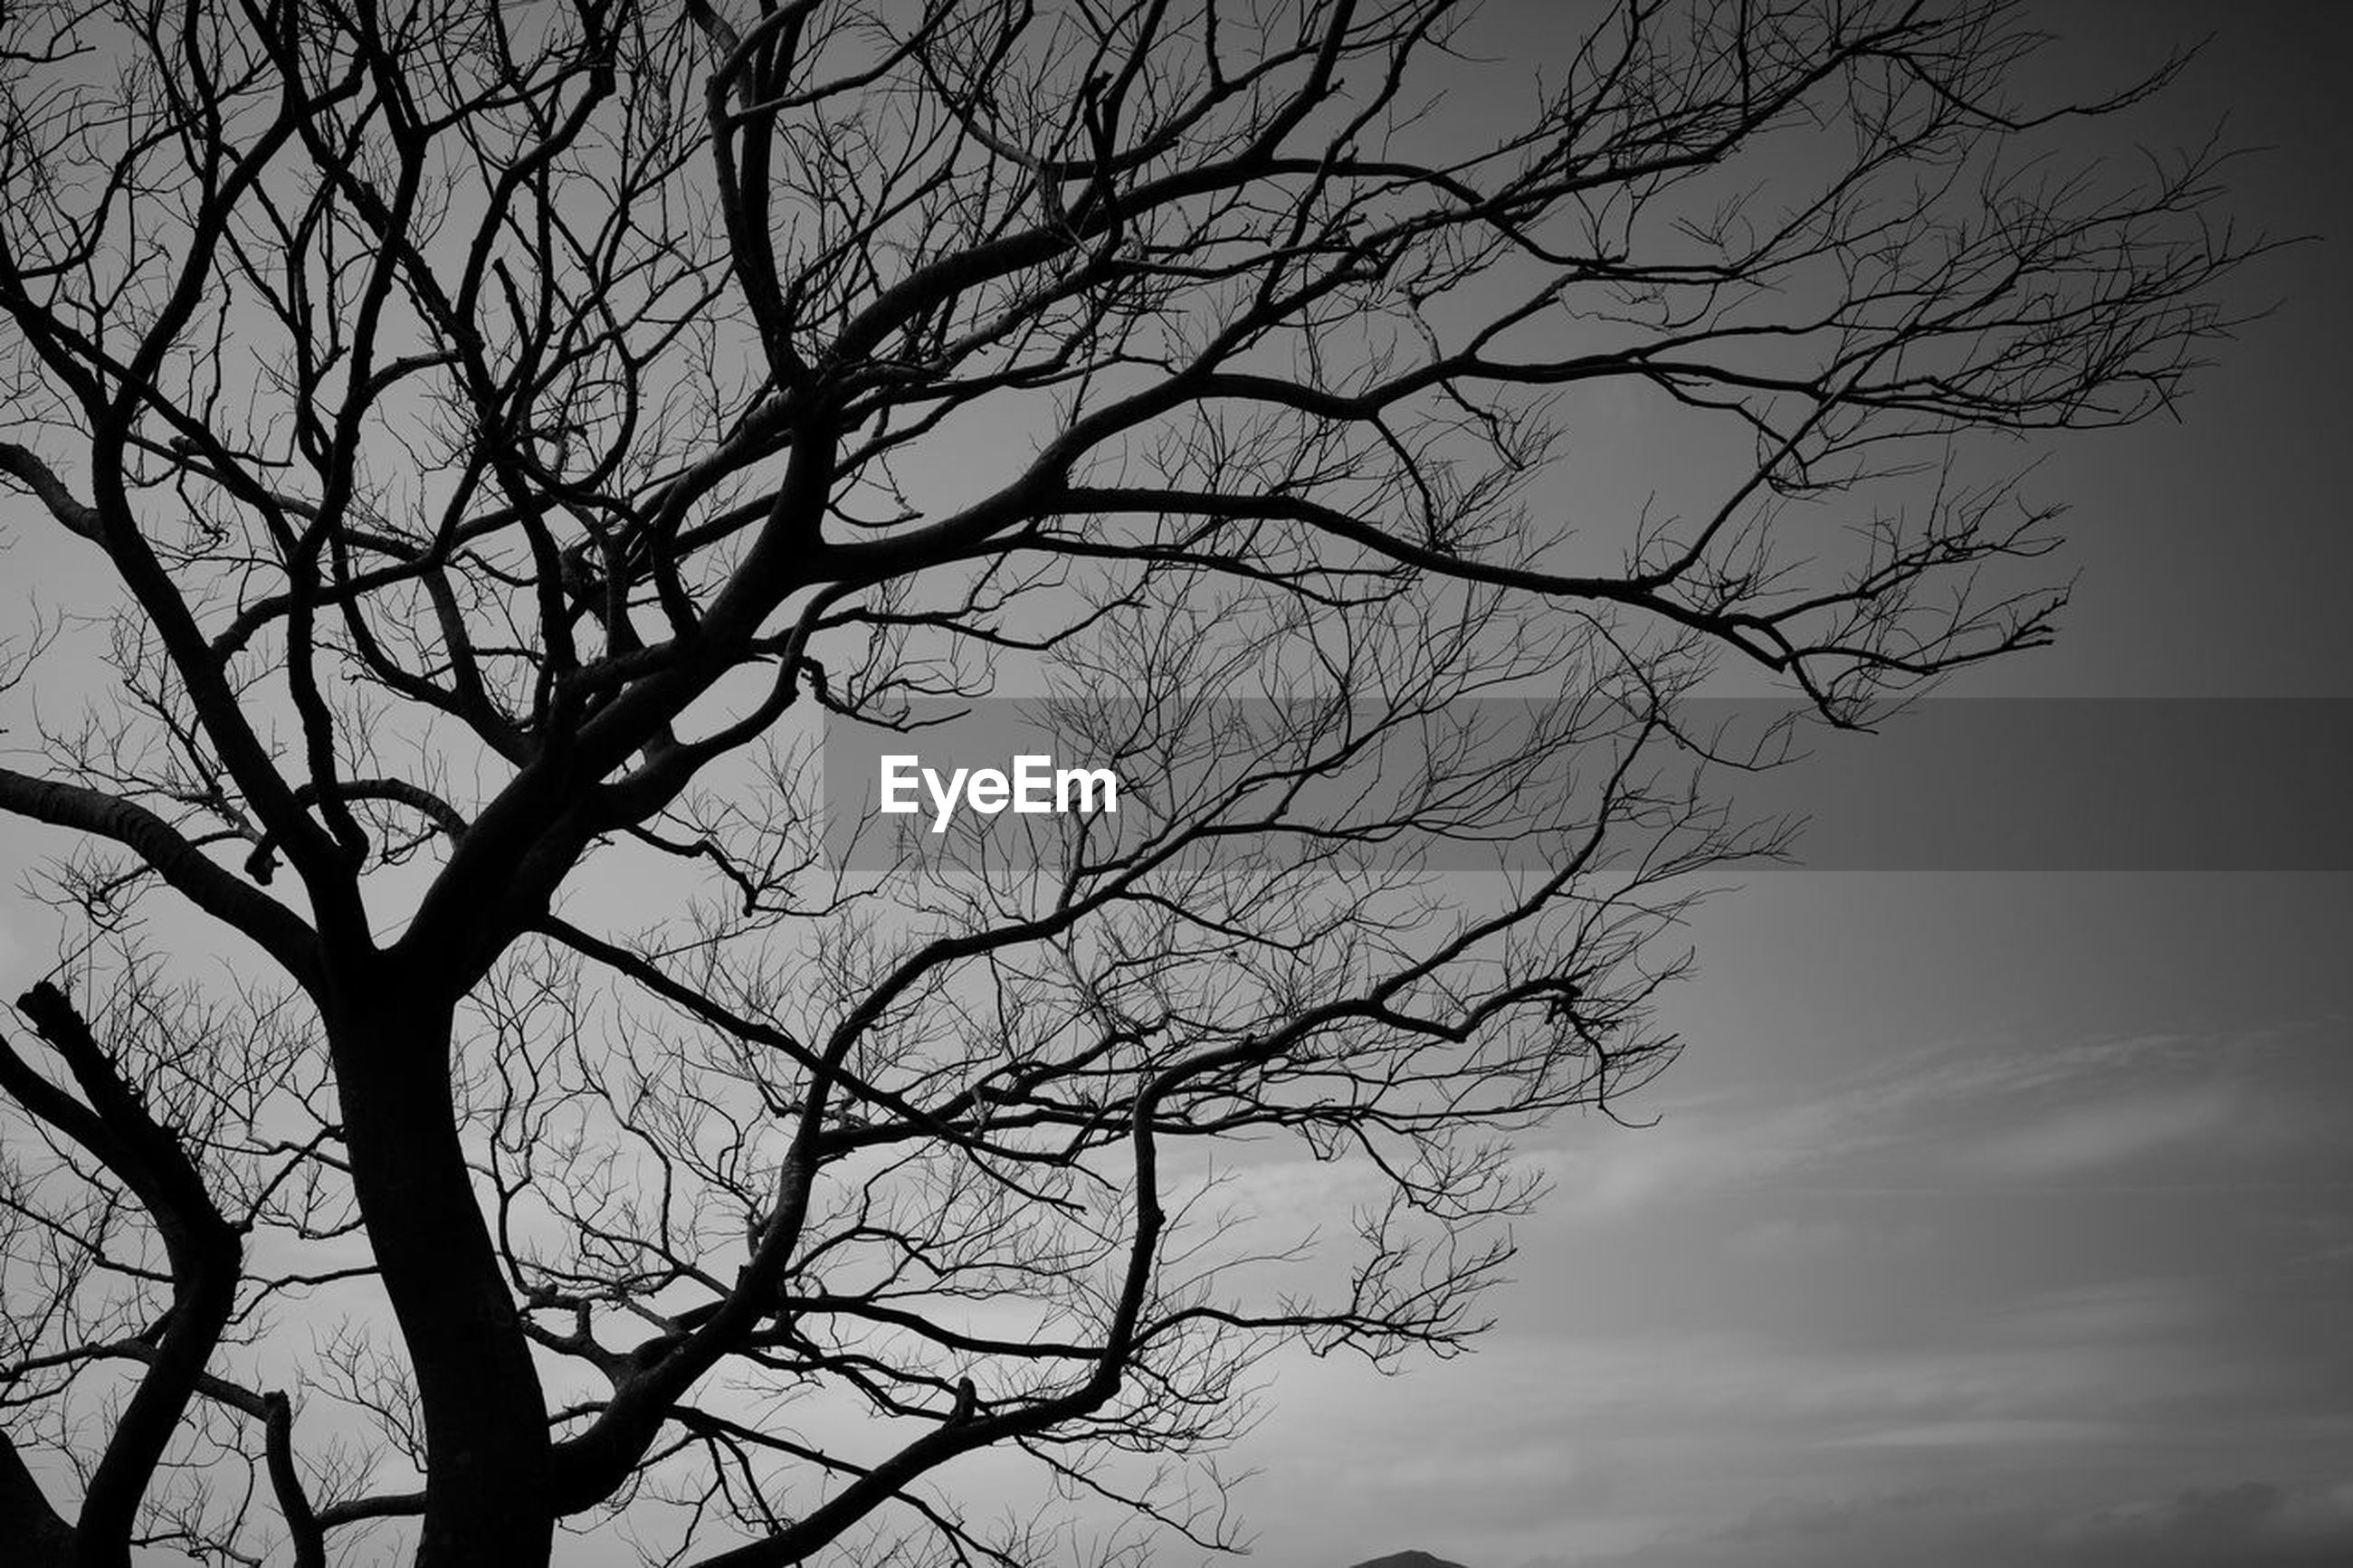 tree, bare tree, sky, branch, plant, black and white, silhouette, monochrome, nature, darkness, monochrome photography, low angle view, no people, beauty in nature, cloud, tranquility, outdoors, scenics - nature, tree trunk, trunk, dusk, tranquil scene